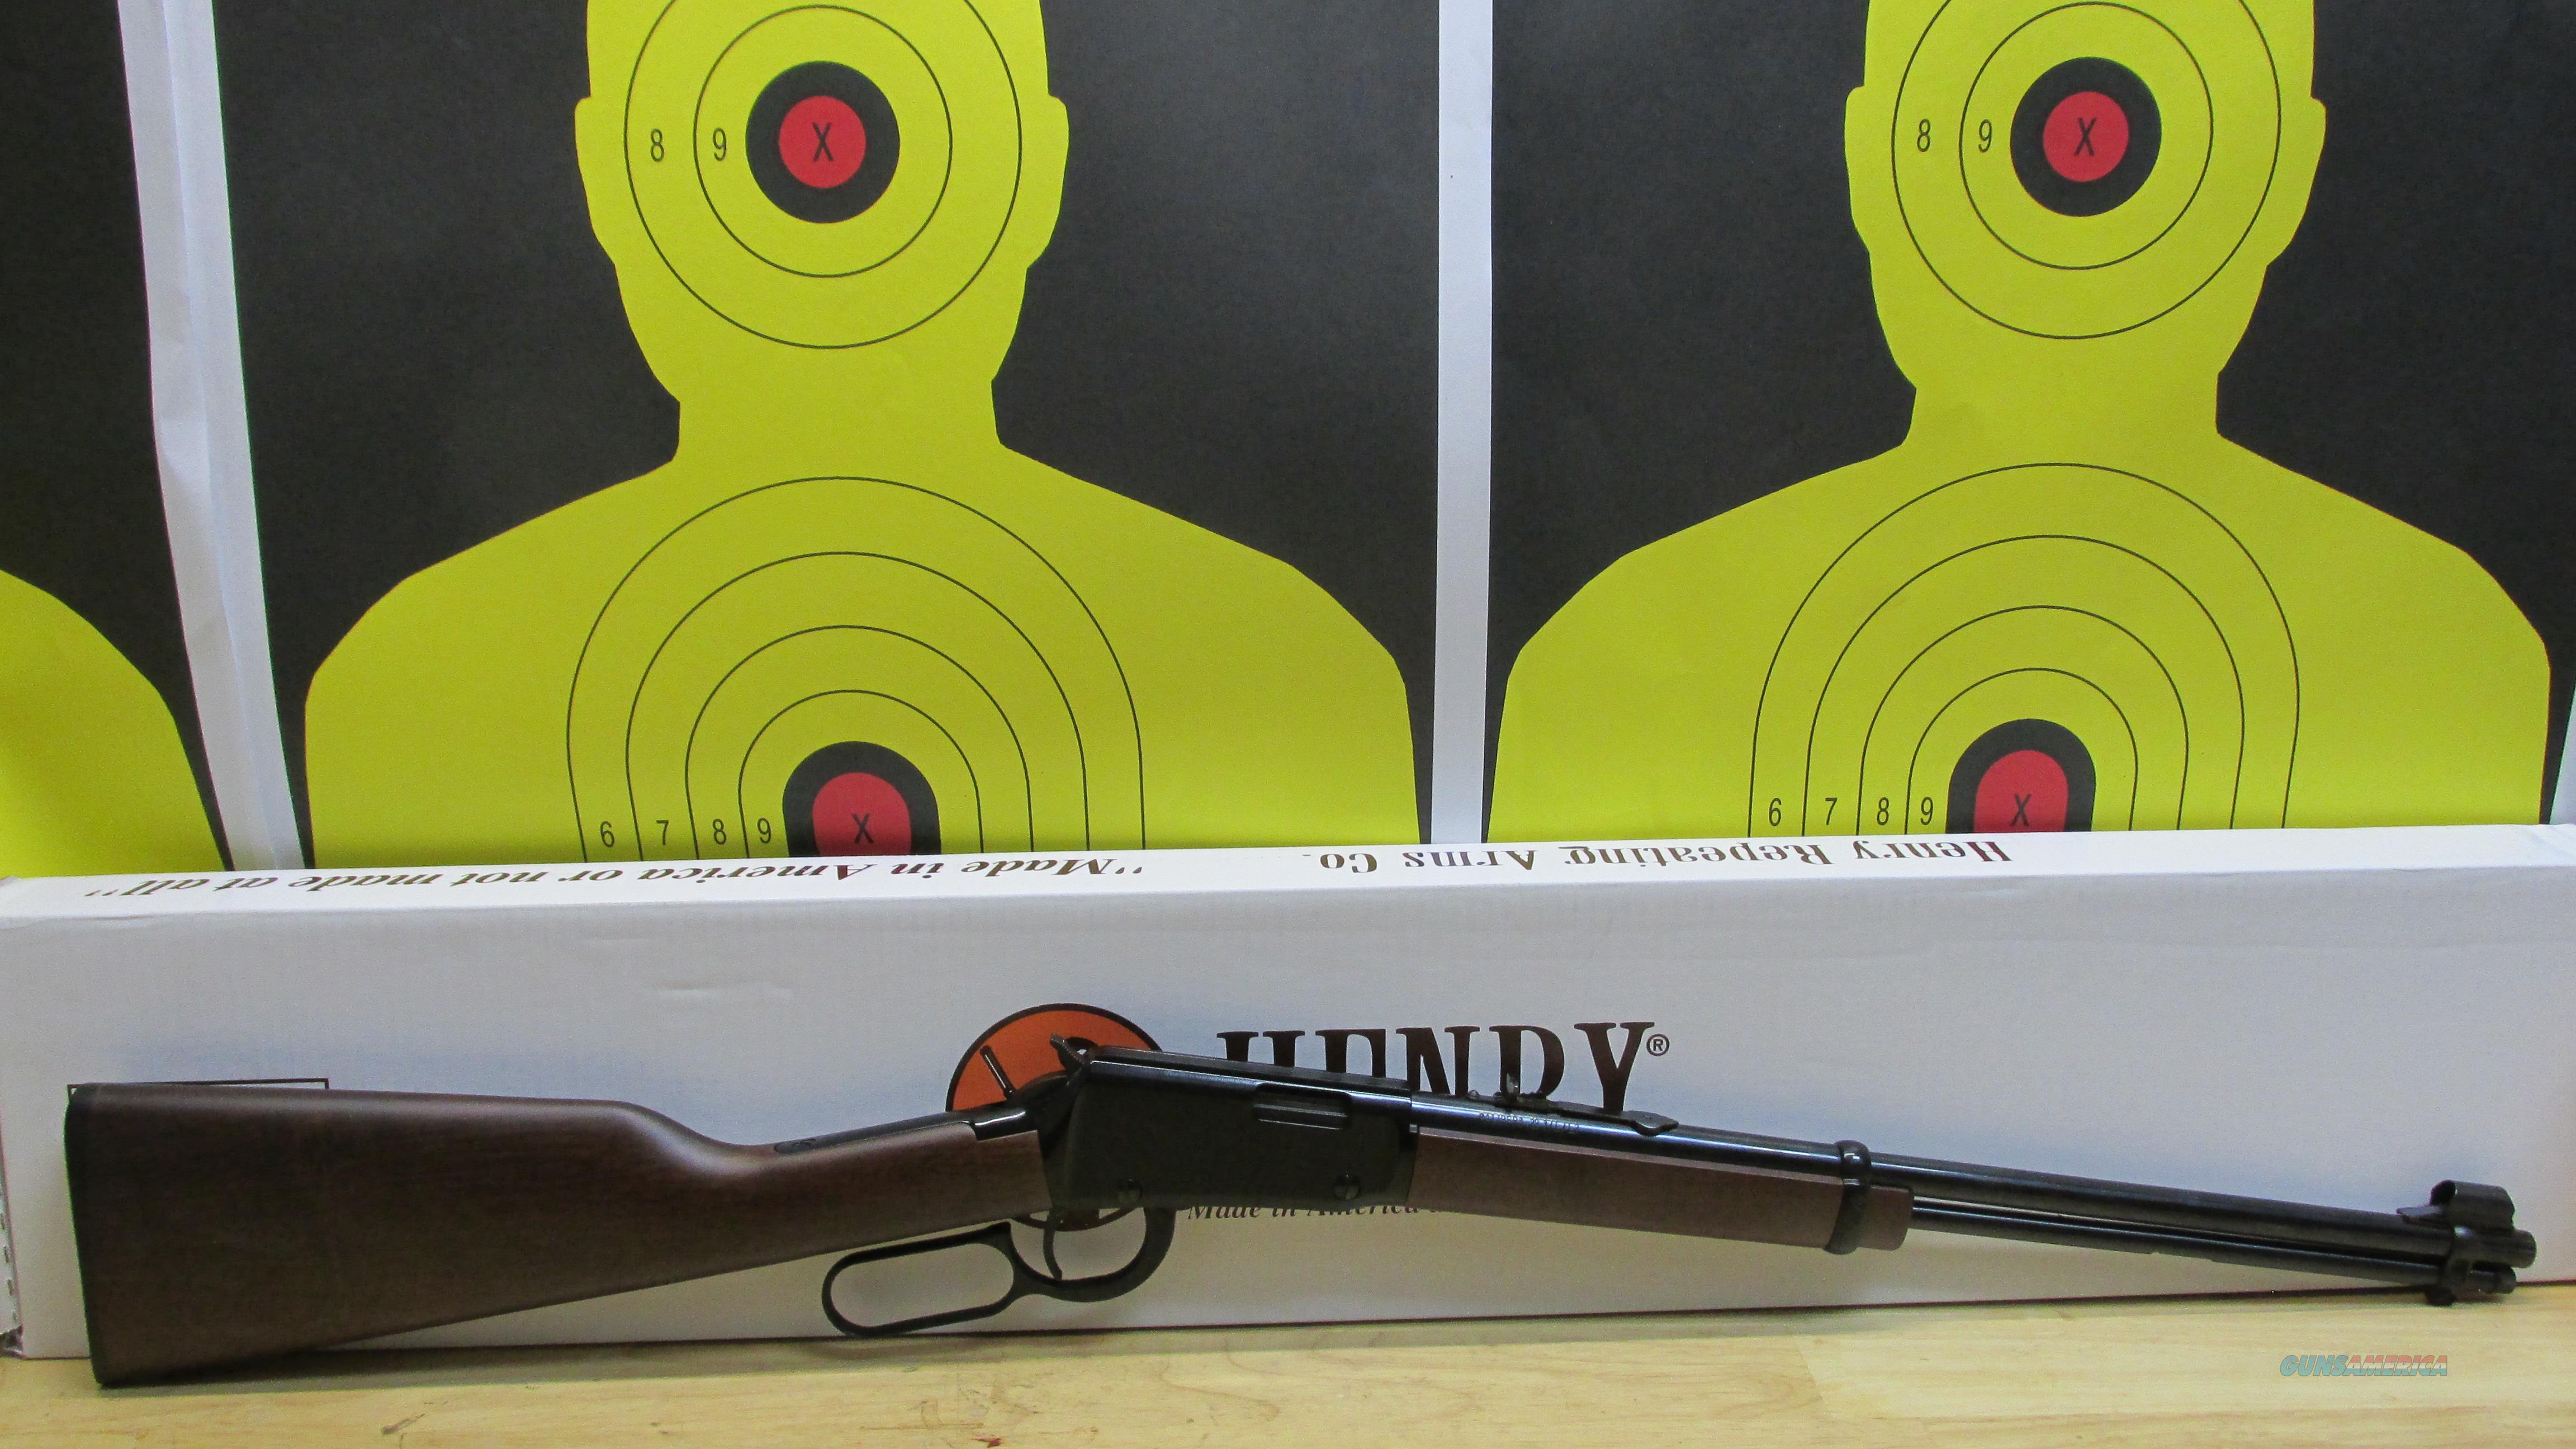 "HENRY REPEATING ARMS, H001 .22S/L/LR LEVER ACTION RIFLE, 15 LR/ 17 L/ 21 S CAPACITY TUBE FED, 18.25"" BARREL  Guns > Rifles > Henry Rifle Company"